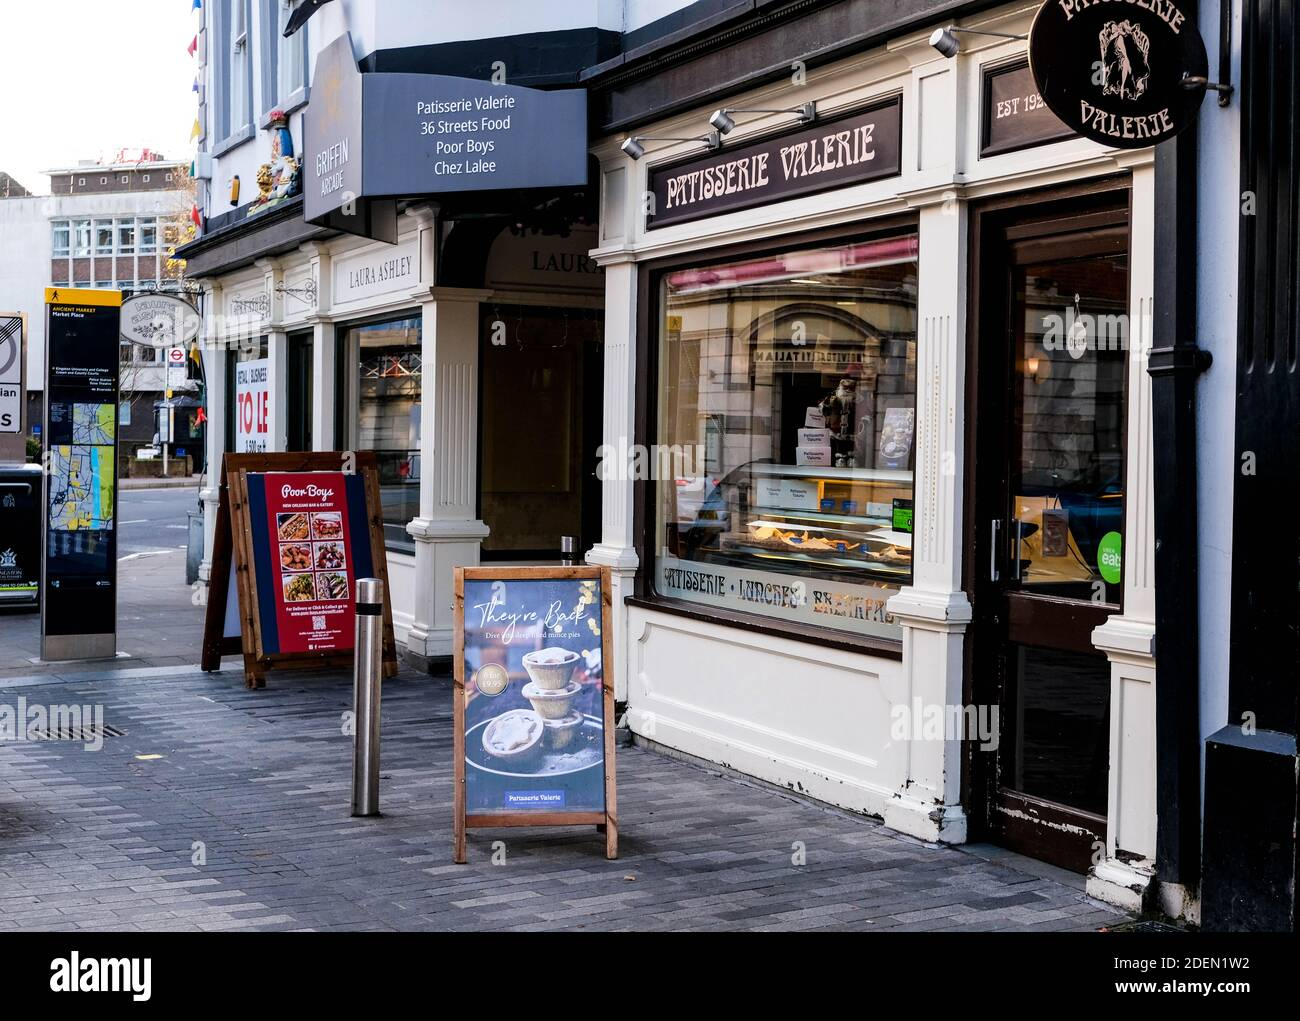 London UK, December 01 2020, Patisserie Valerie Traditional Tea and Pastry Shop Closed During COVID-19 Lockdown Stock Photo